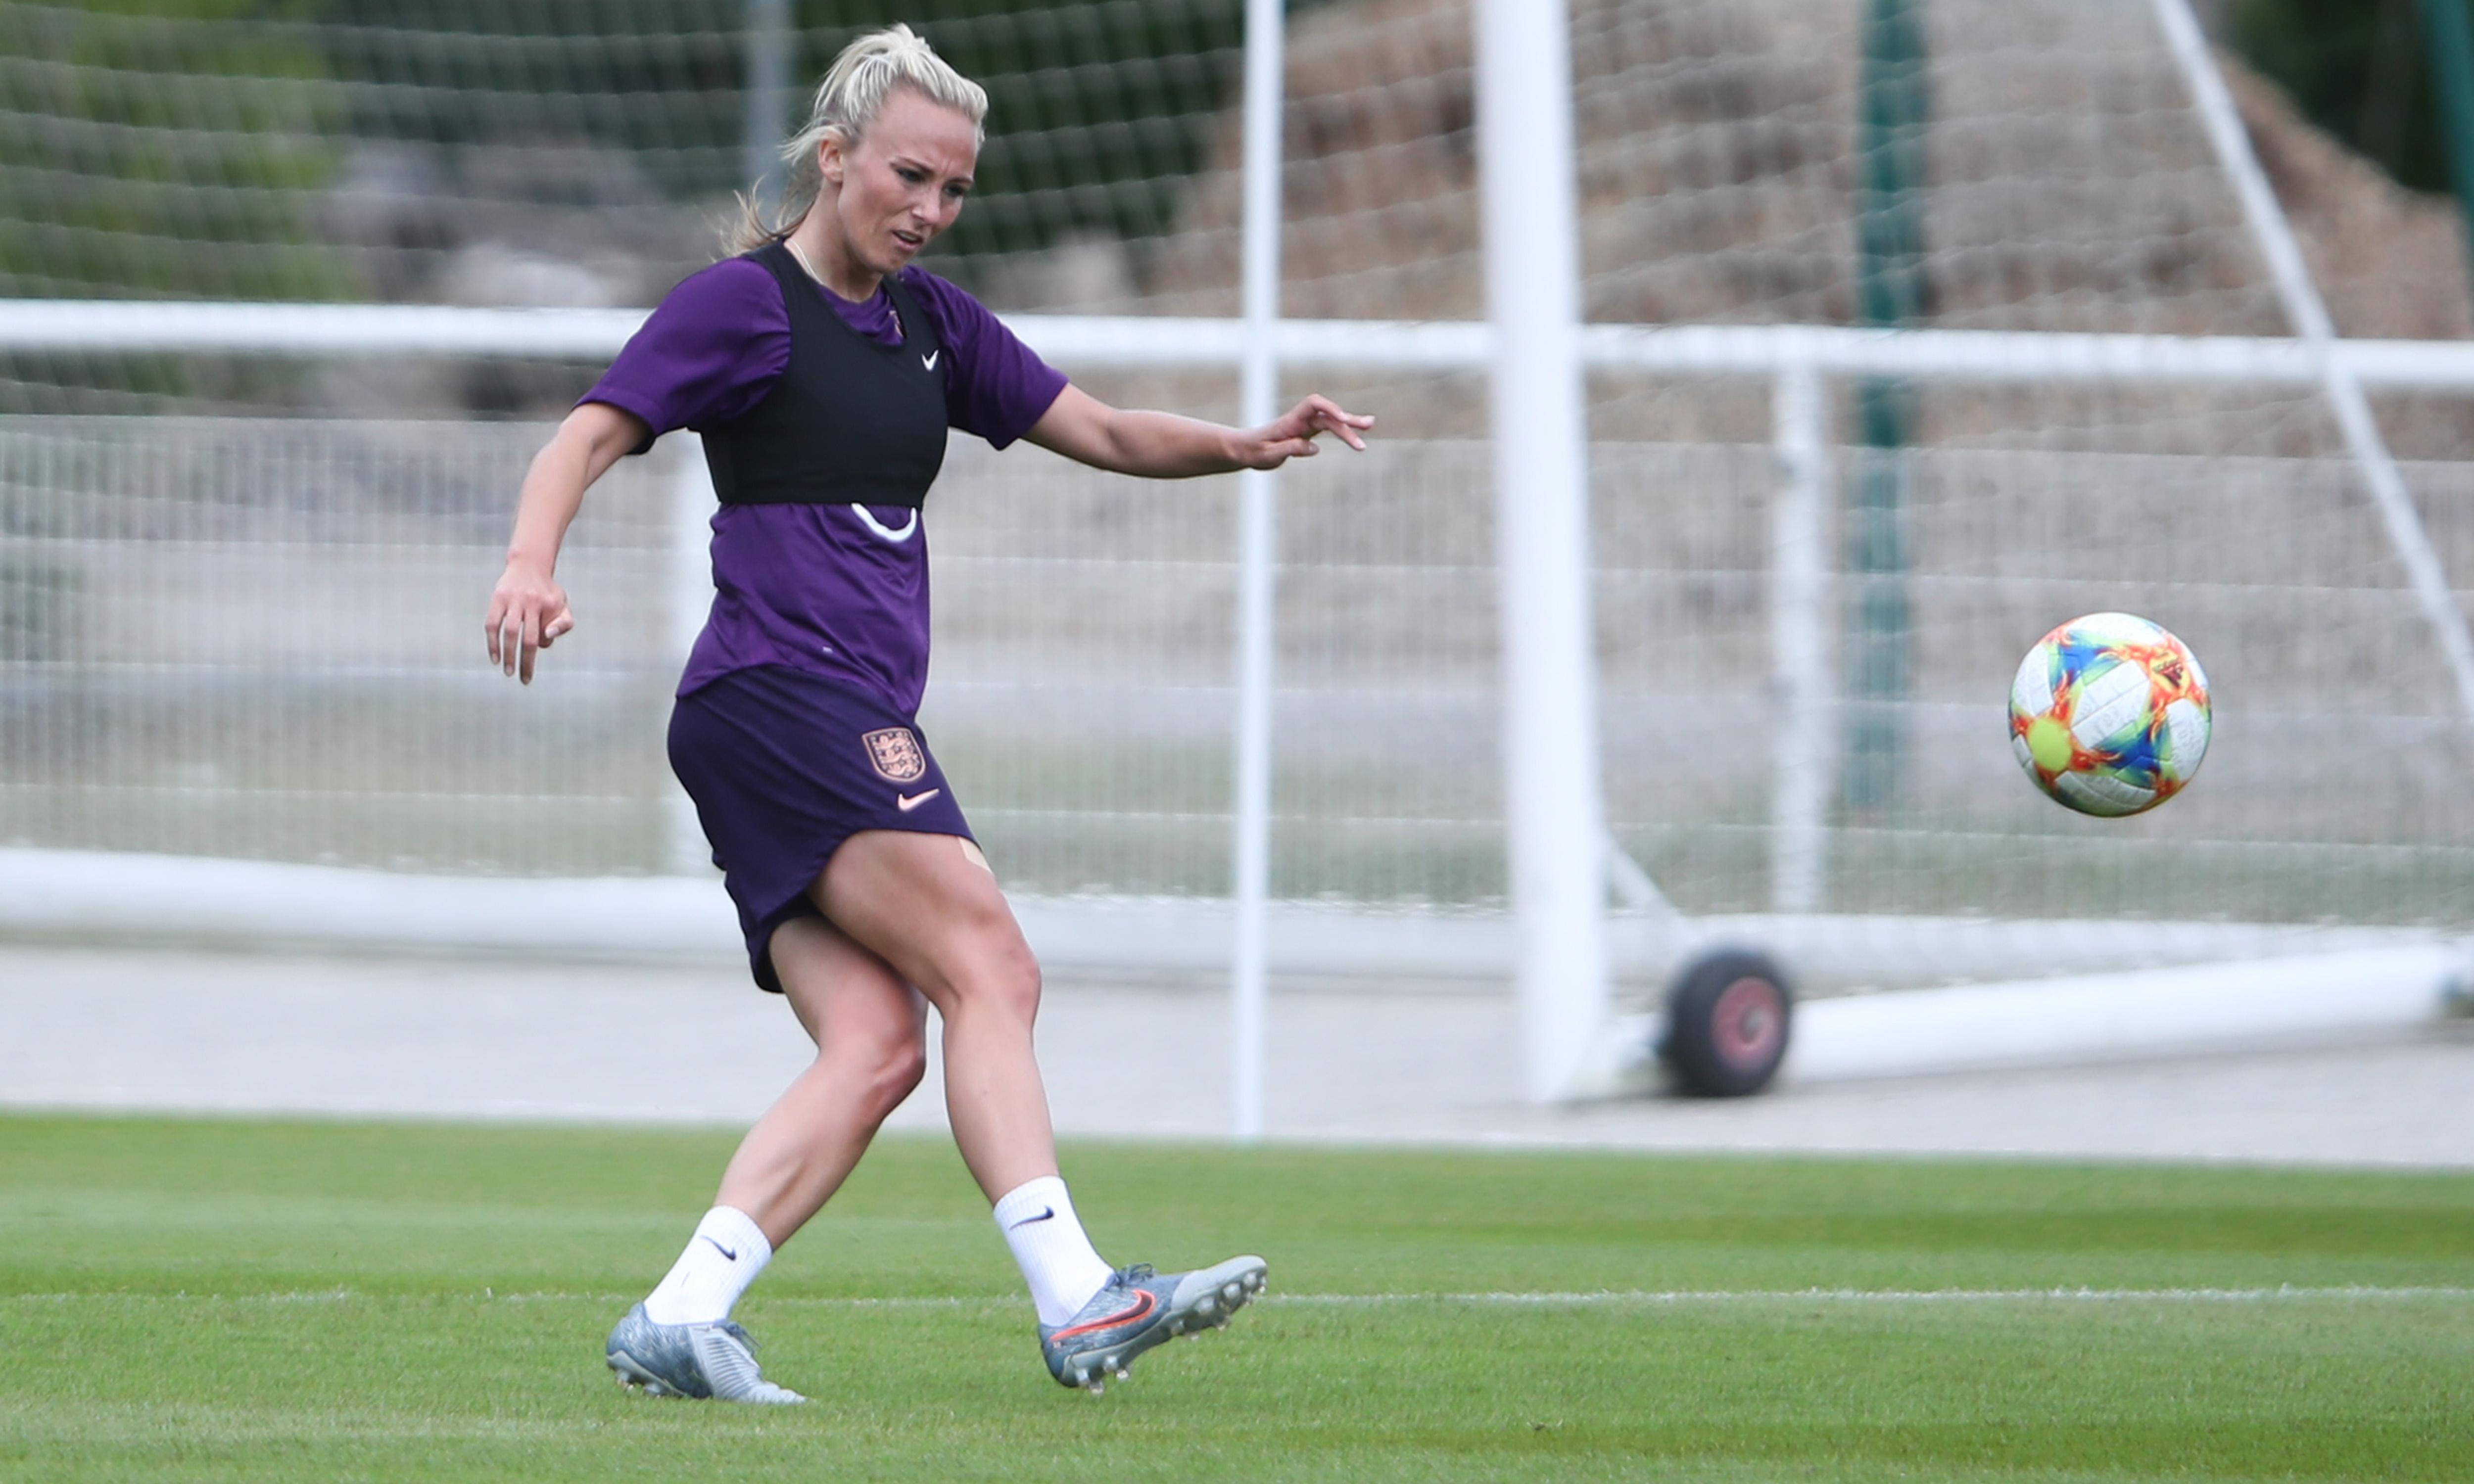 England's Toni Duggan is all praise for Phil Neville's passing philosophy